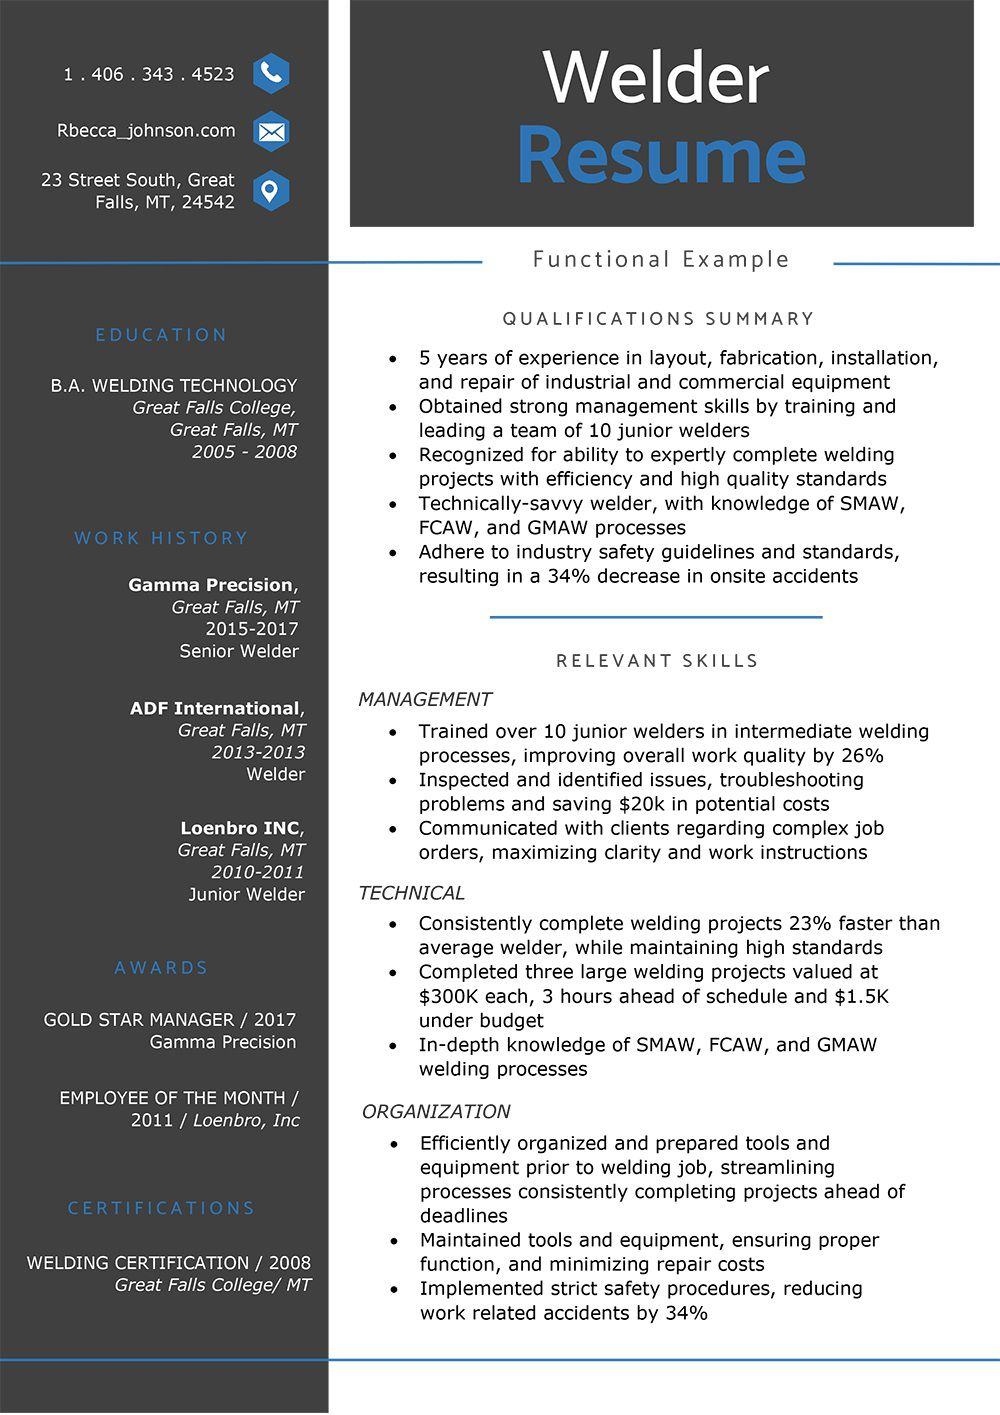 008 Awful Functional Resume Template Free Design Full